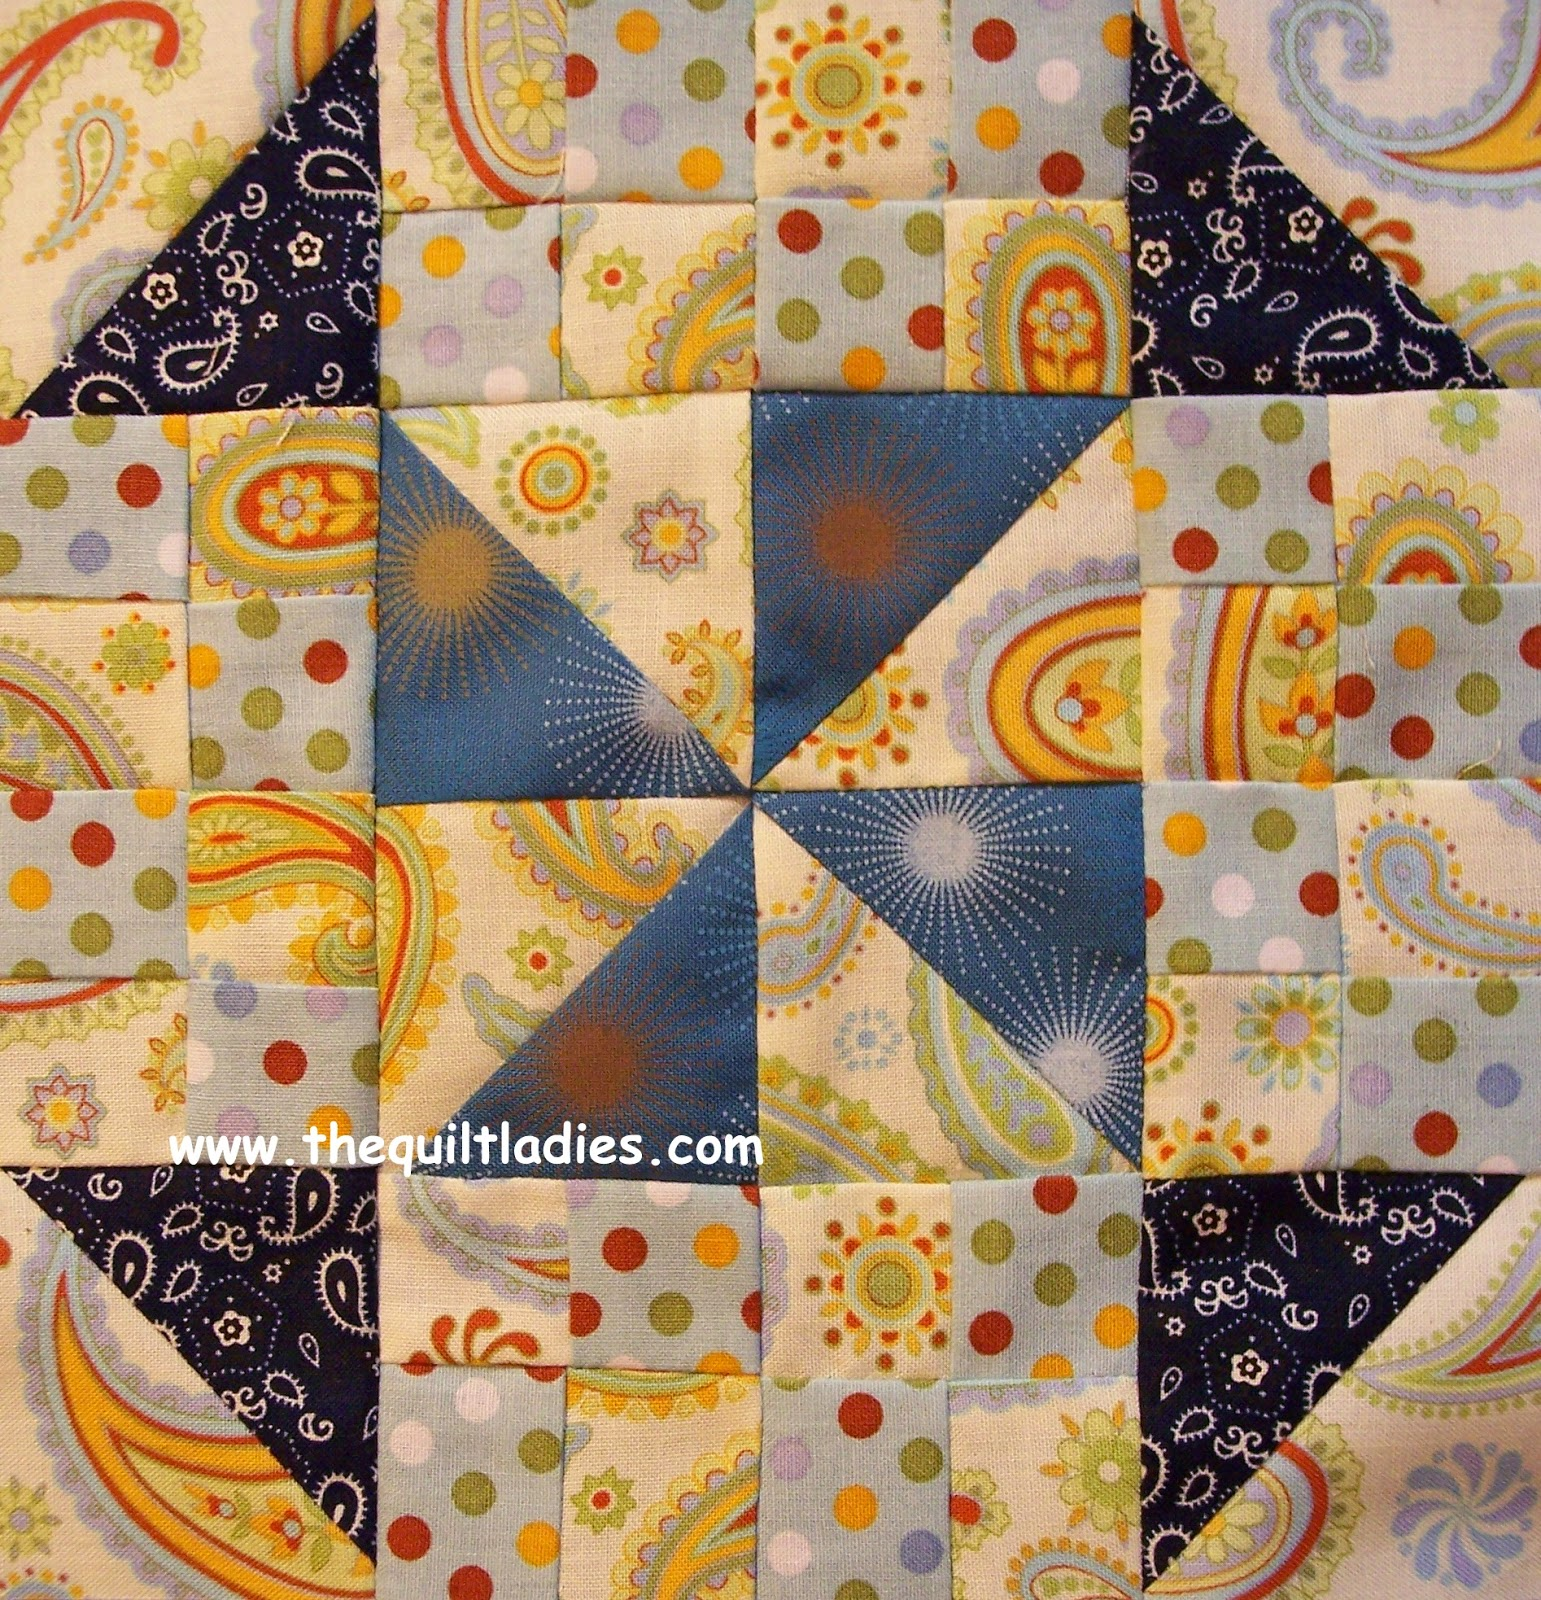 Quilt Pattern of the Month from The Quilt Ladies